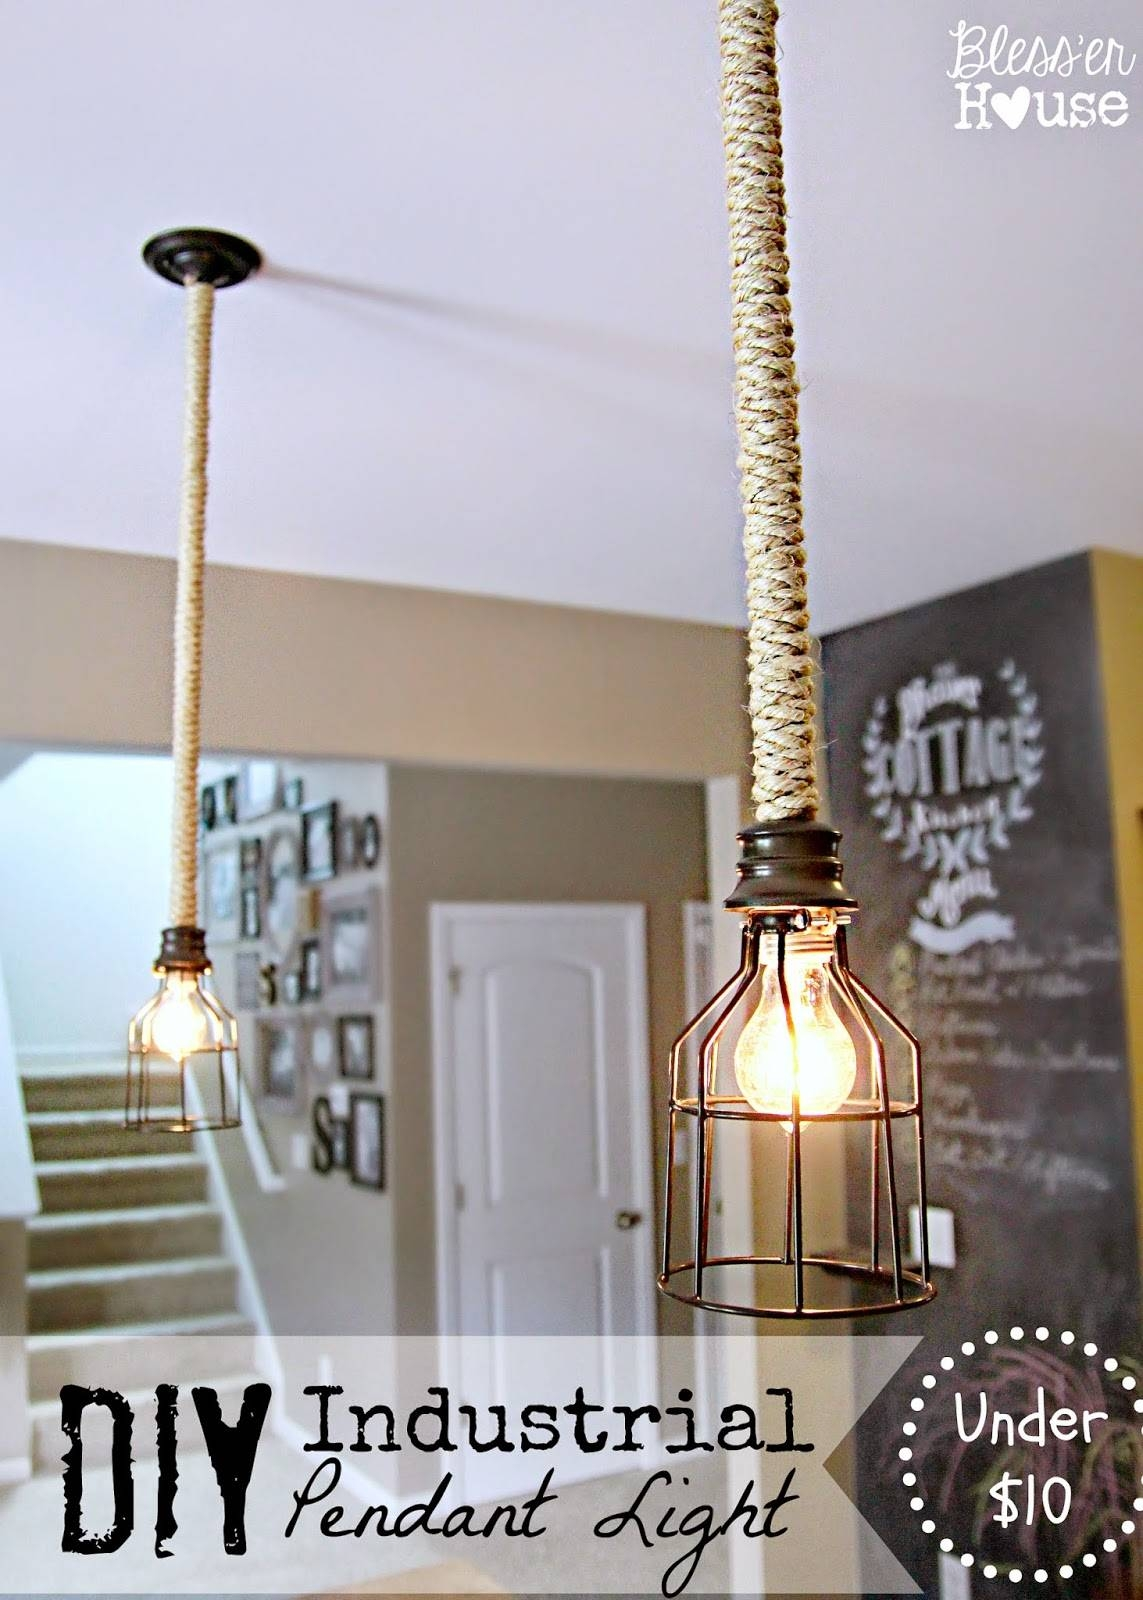 5 Diy Industrial Light Fixtures For Under $25   Bless'er House Throughout Homemade Pendant Lights (Photo 2 of 15)